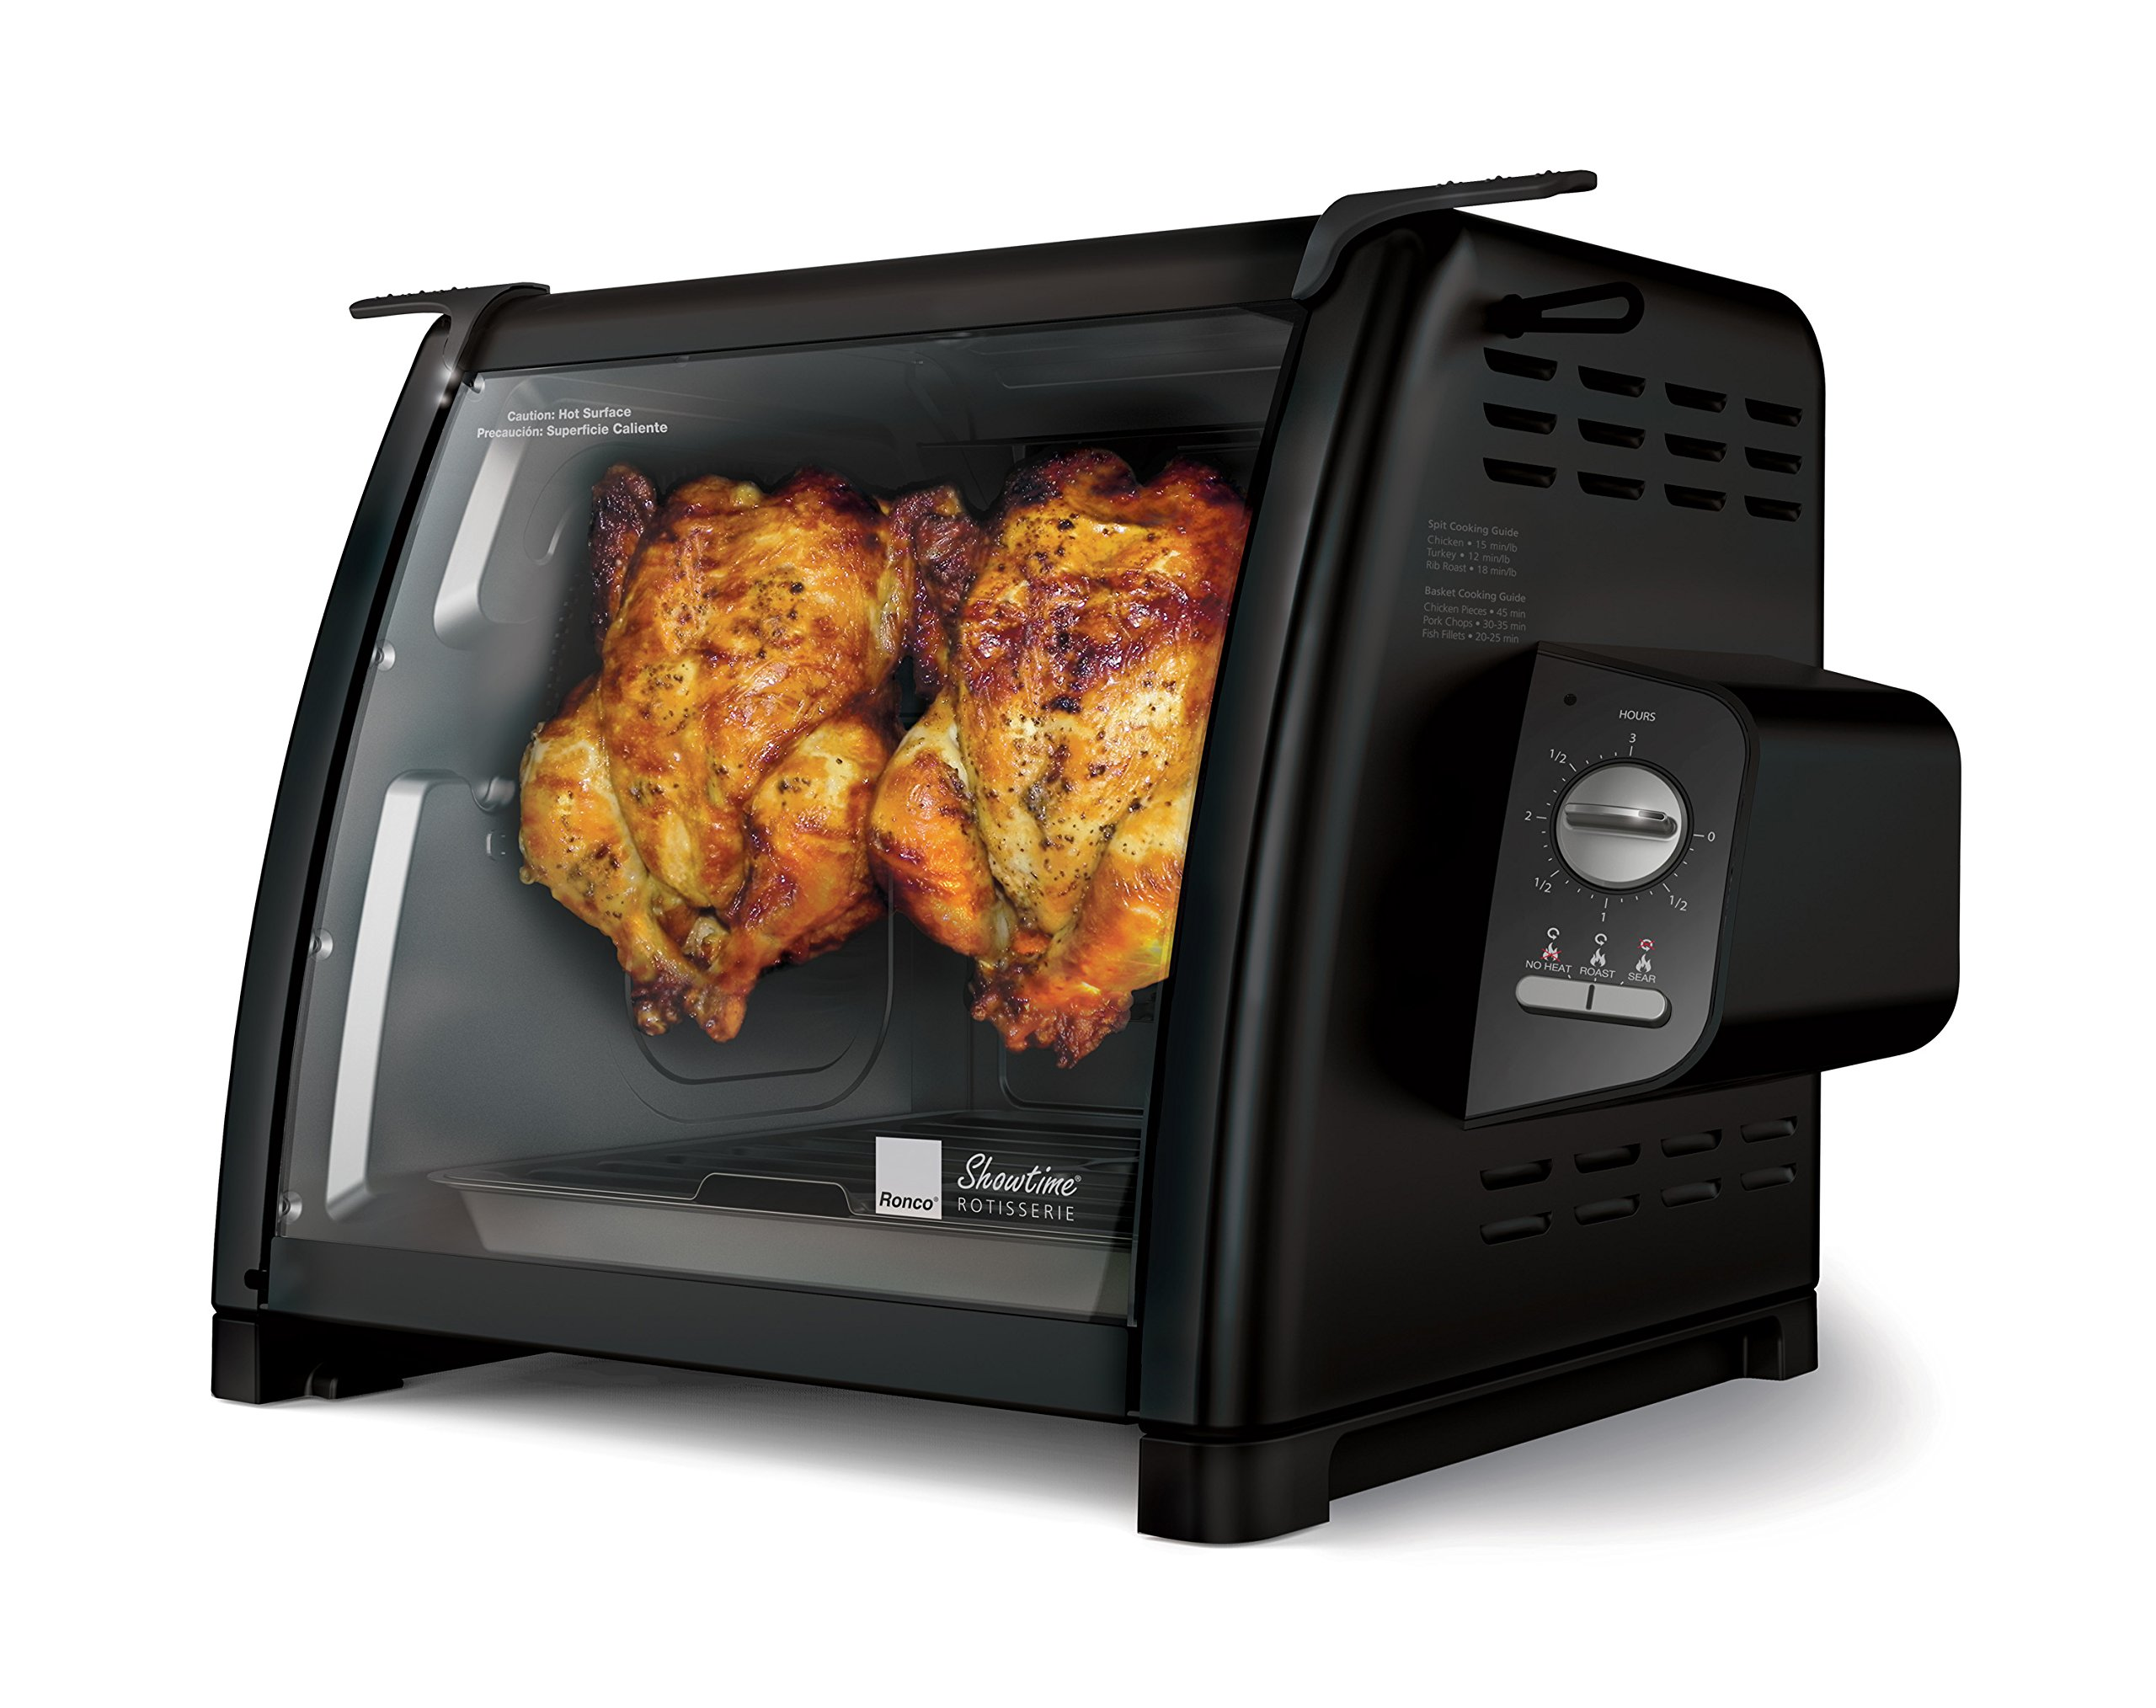 Ronco 5500 Series Rotisserie Oven, Black by Ronco (Image #1)